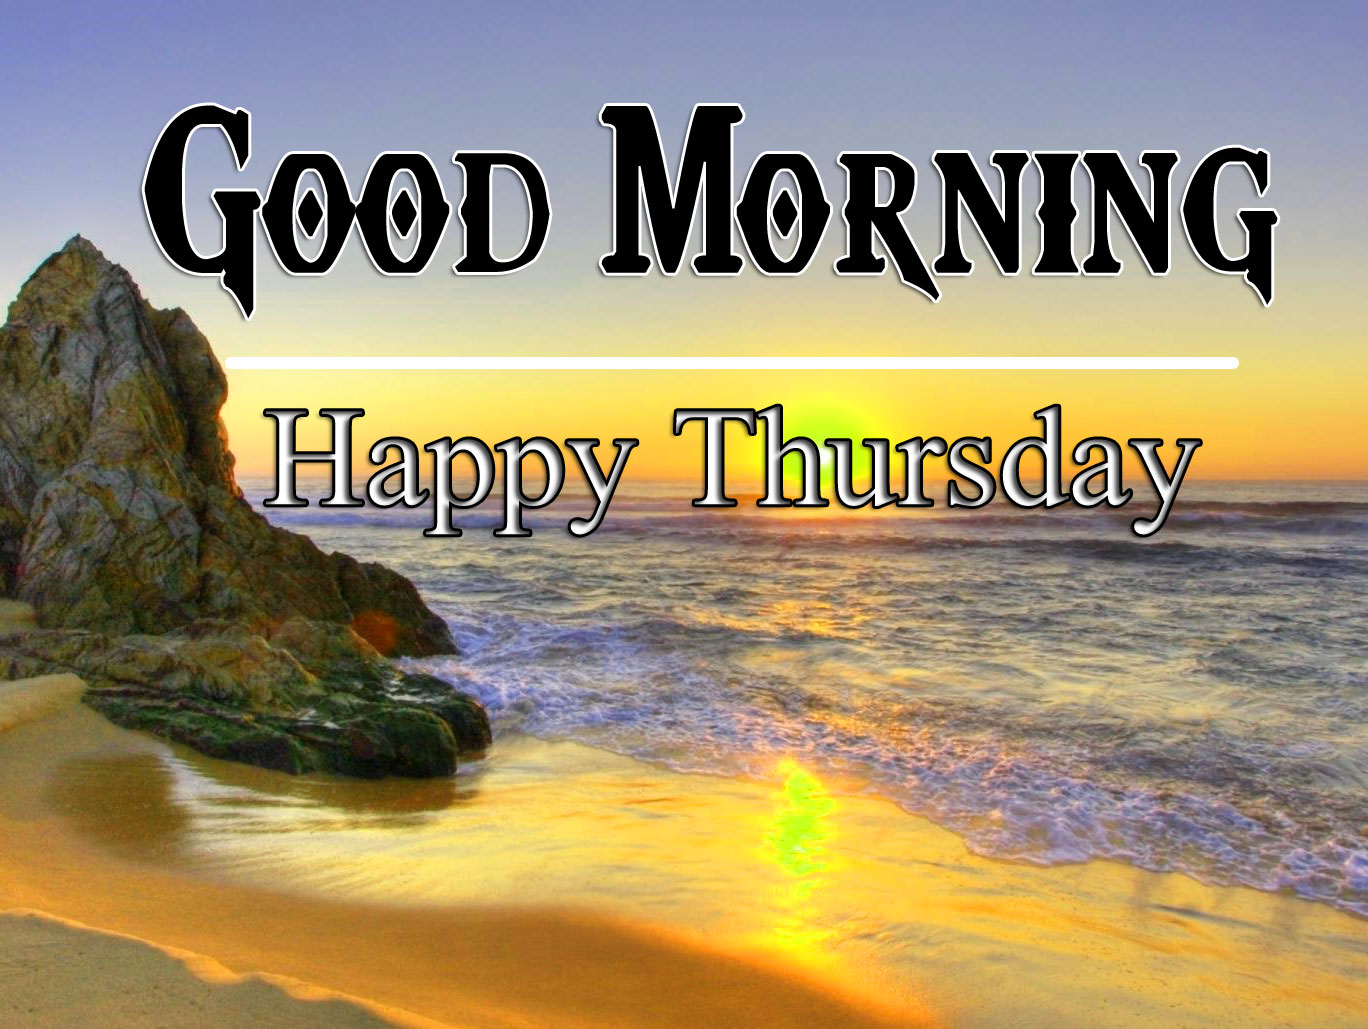 Free HD thursday morning Images 5